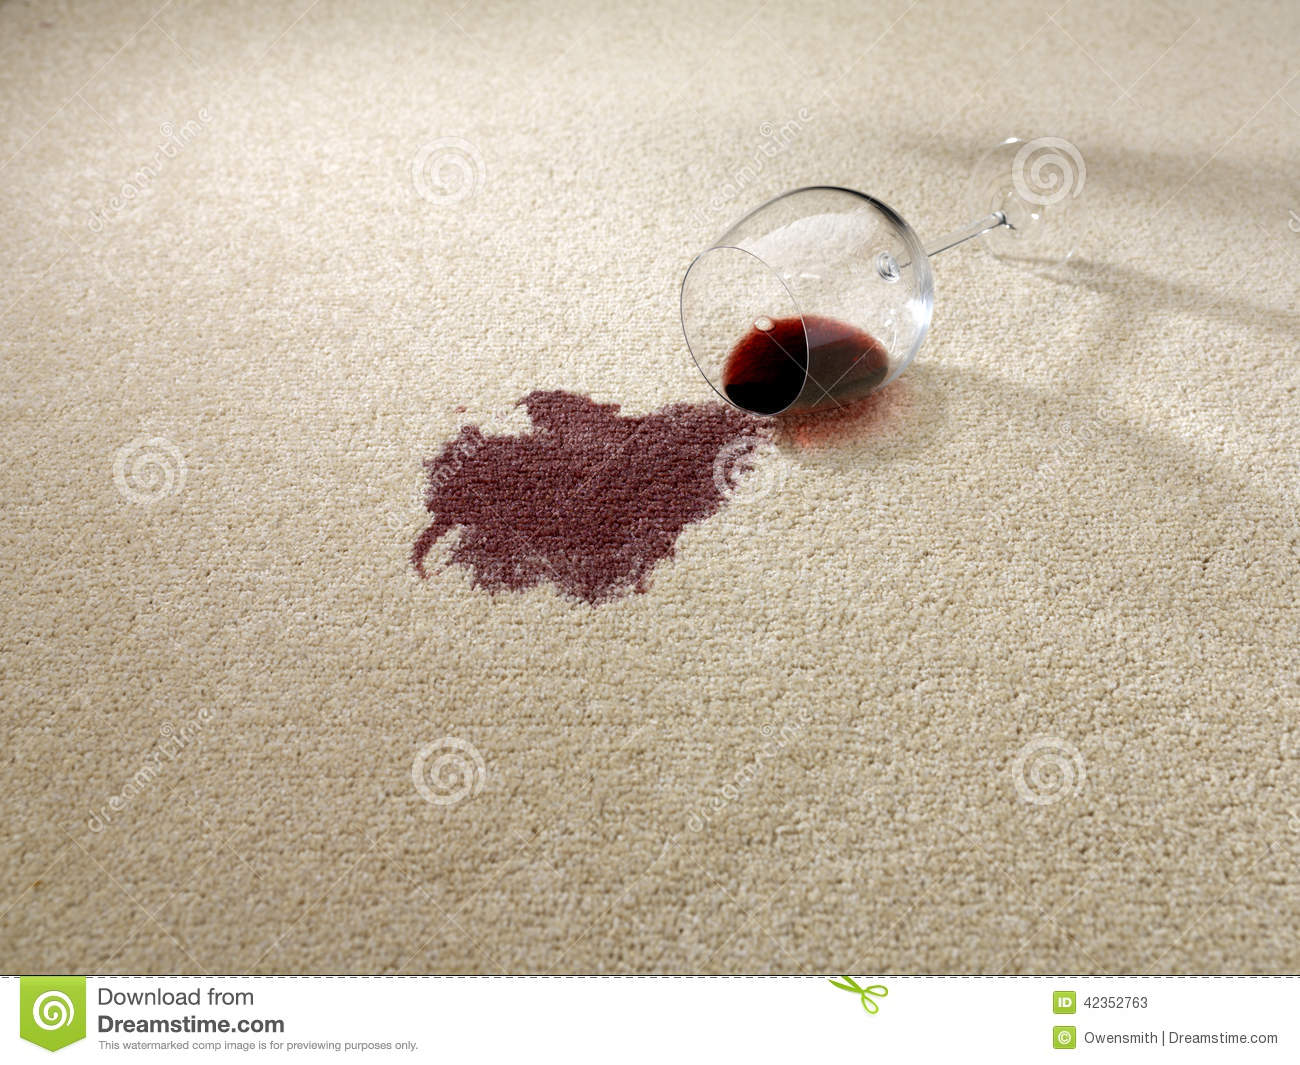 Red wine spilt on carpet